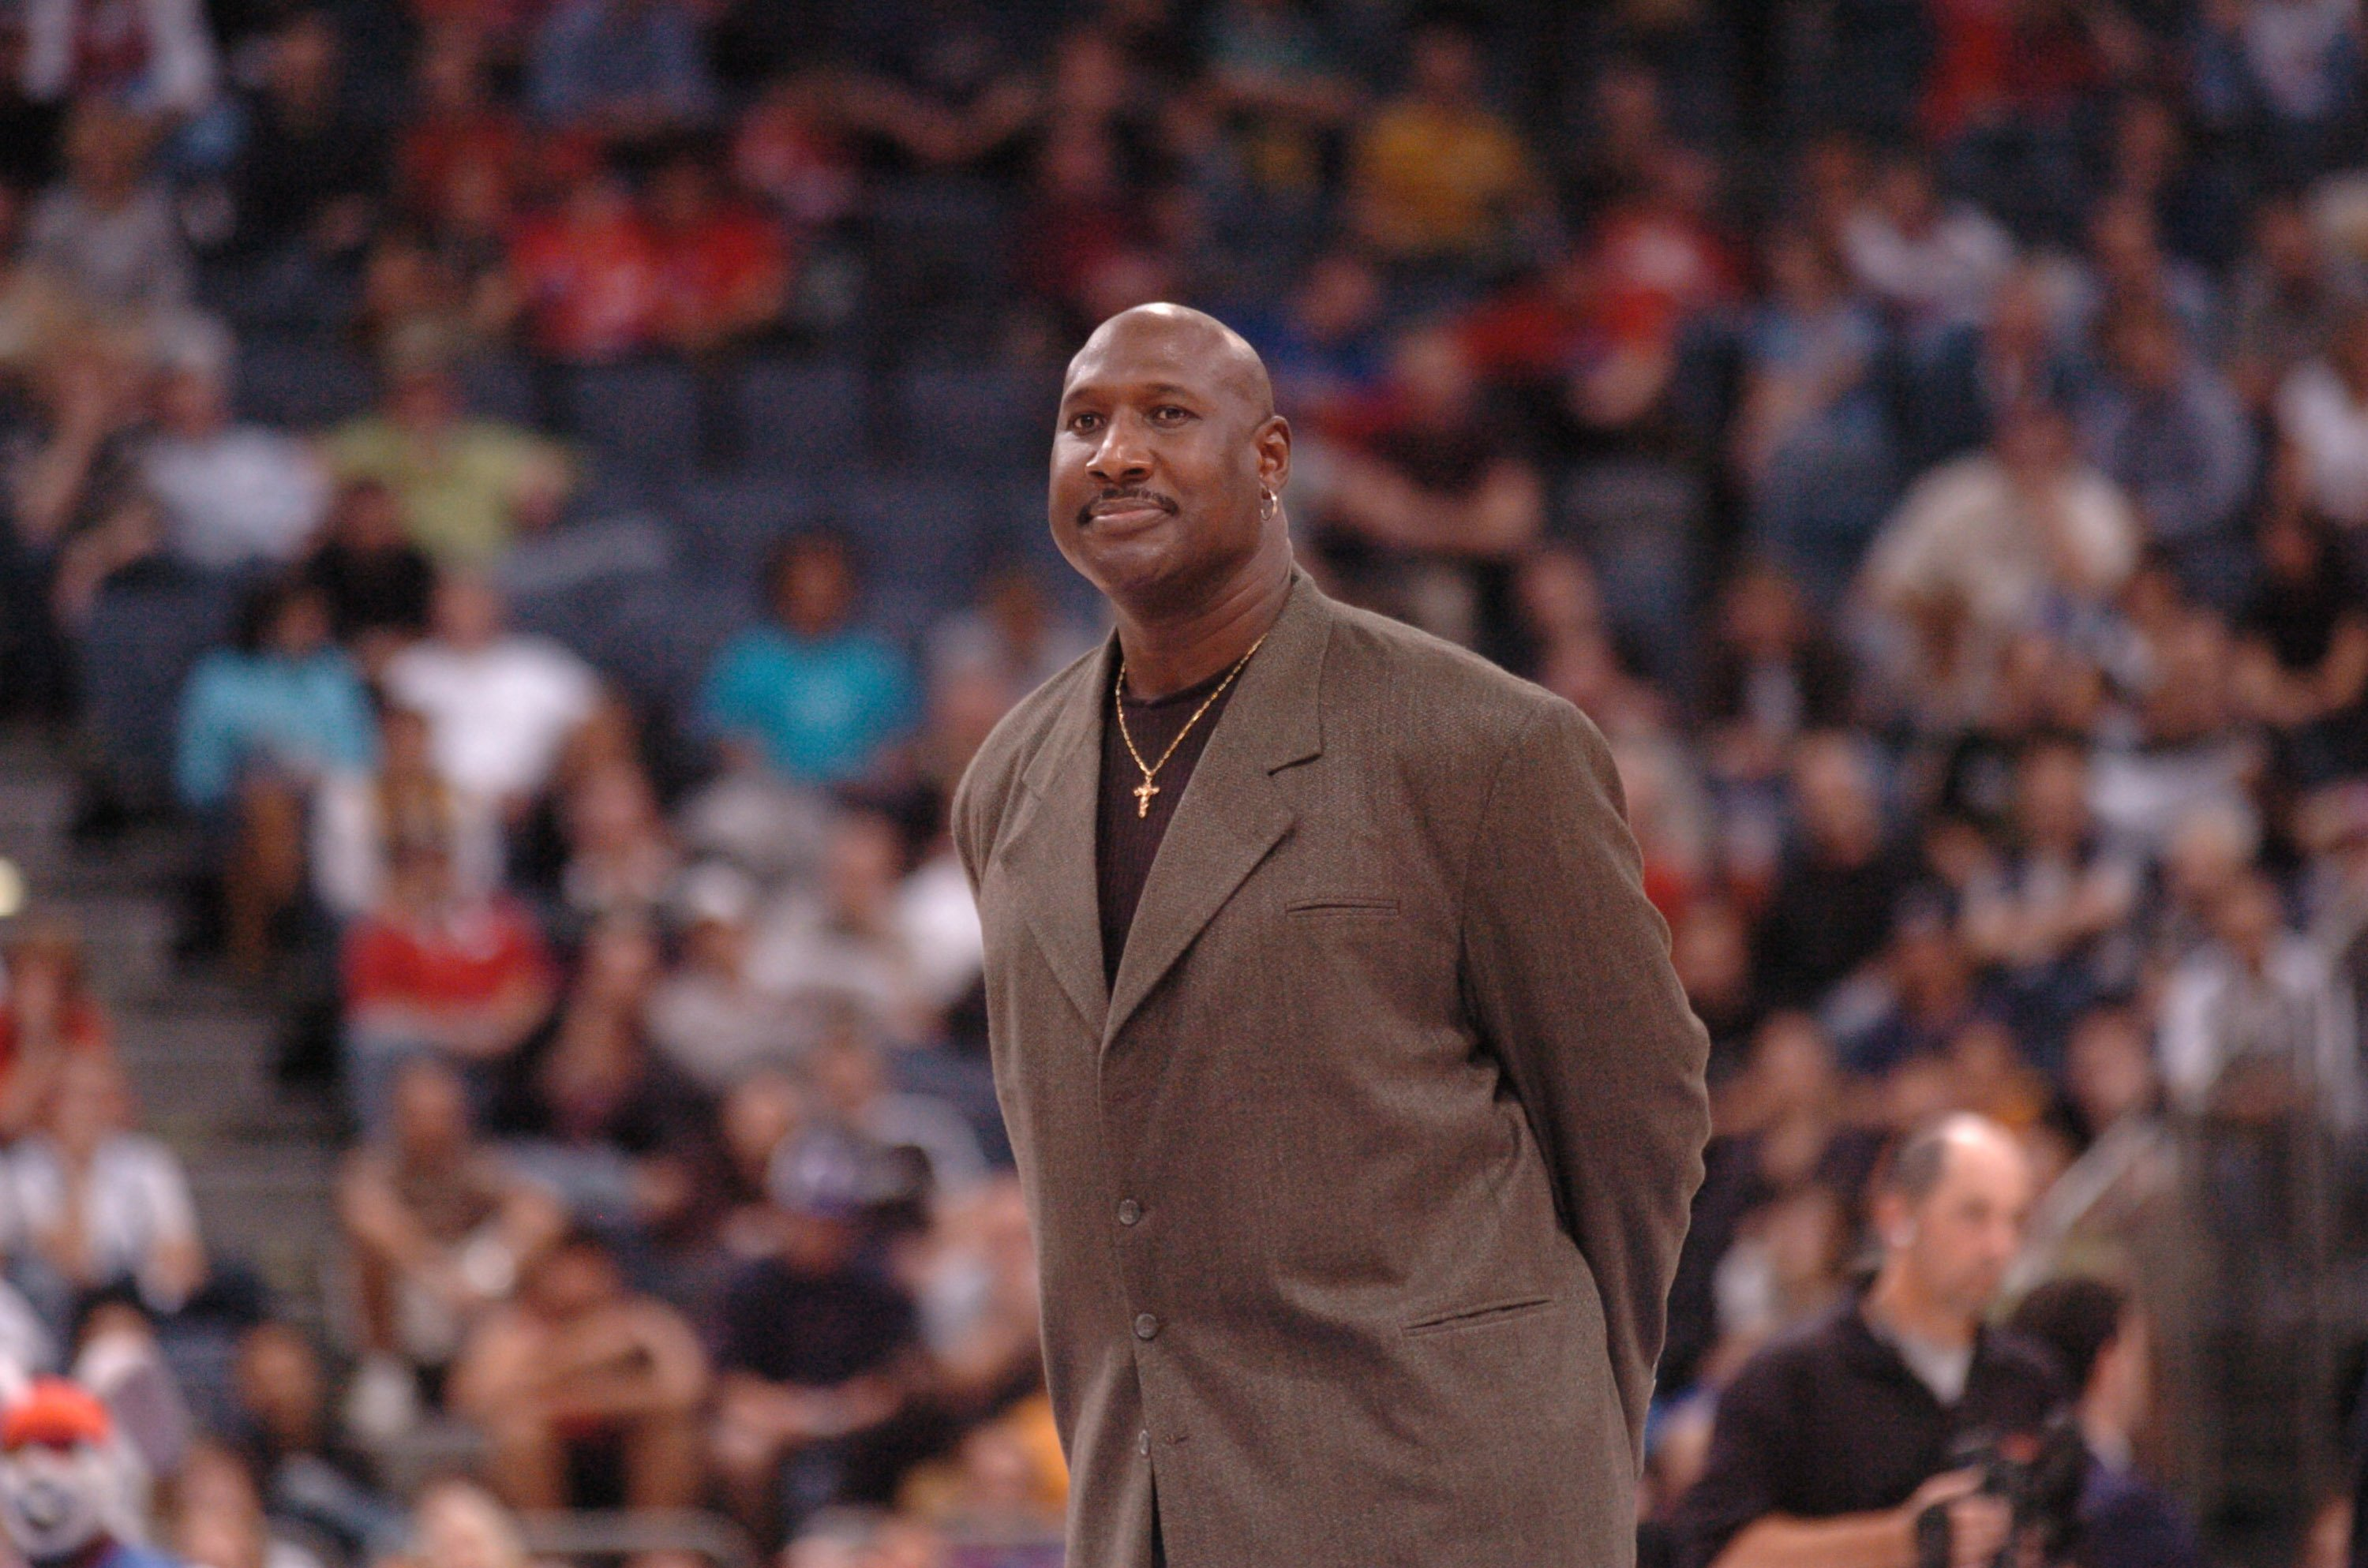 Darryl Dawkins gets introduced to the crowd during the NBA Europe Live Tour presented by EA Sports on October 10, 2006